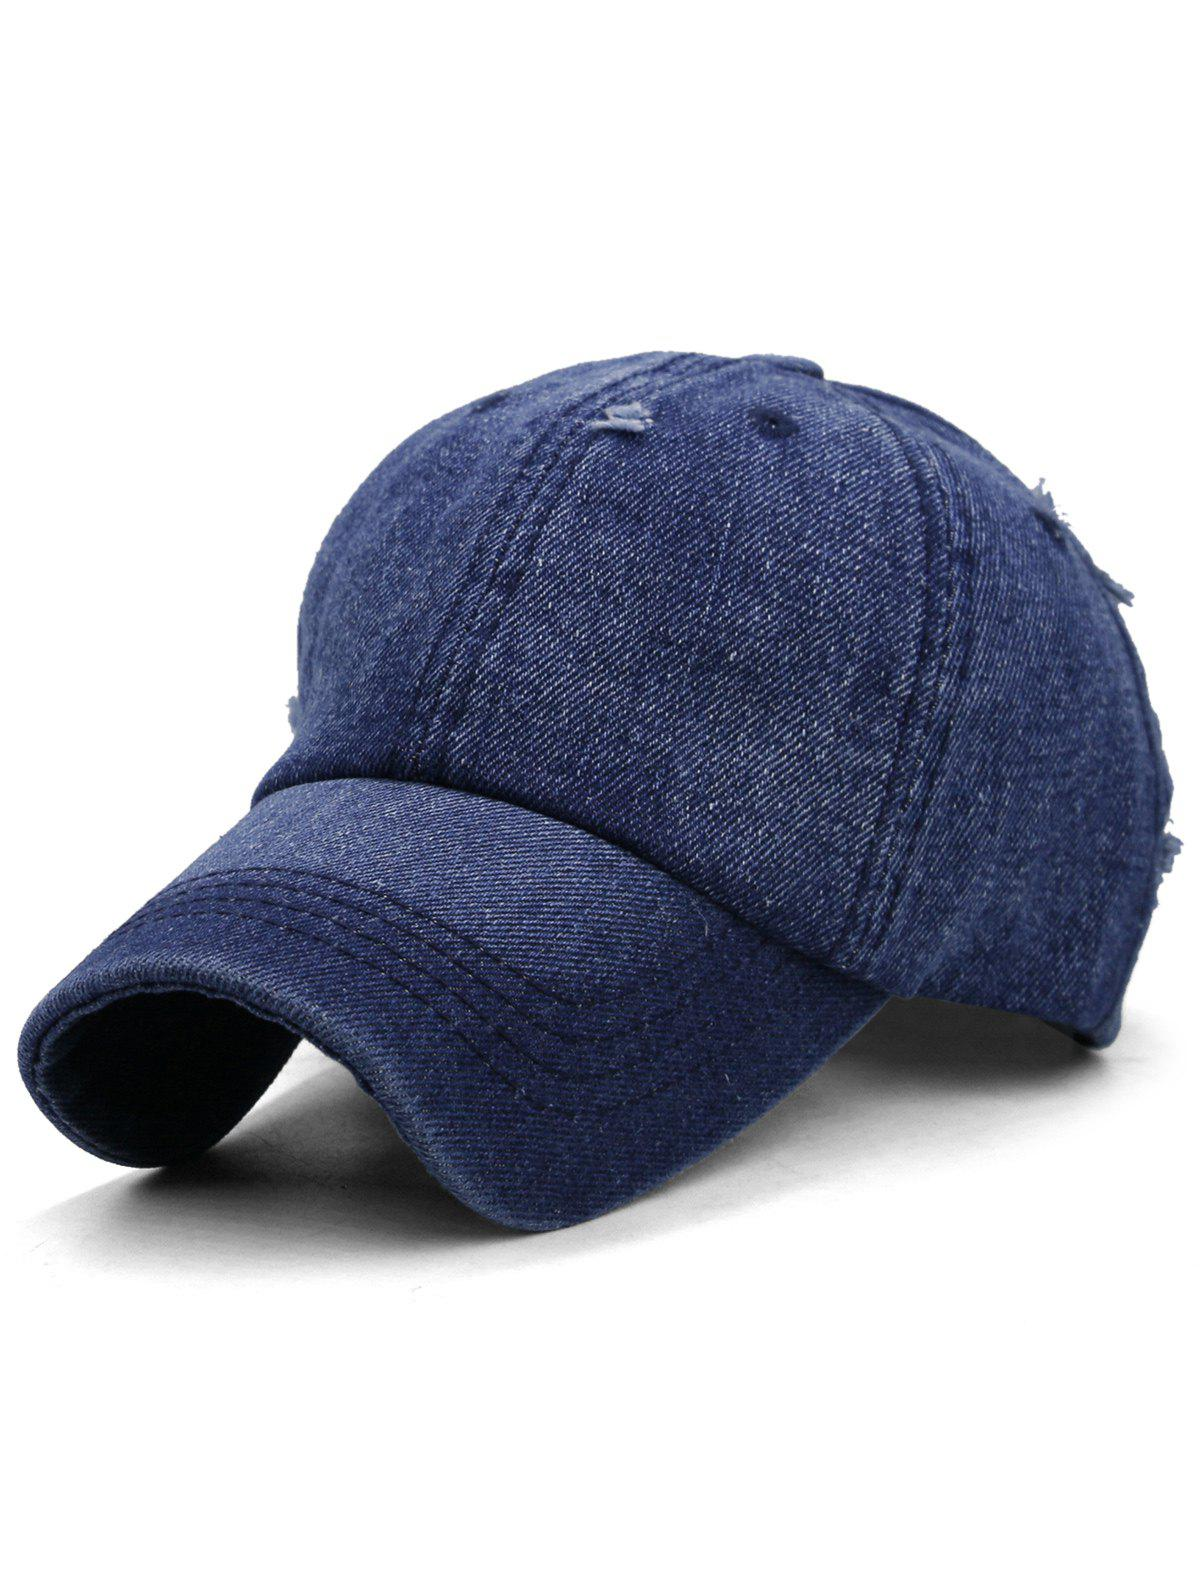 Solid Color Washed Distressed Graphic Hat - LAPIS BLUE